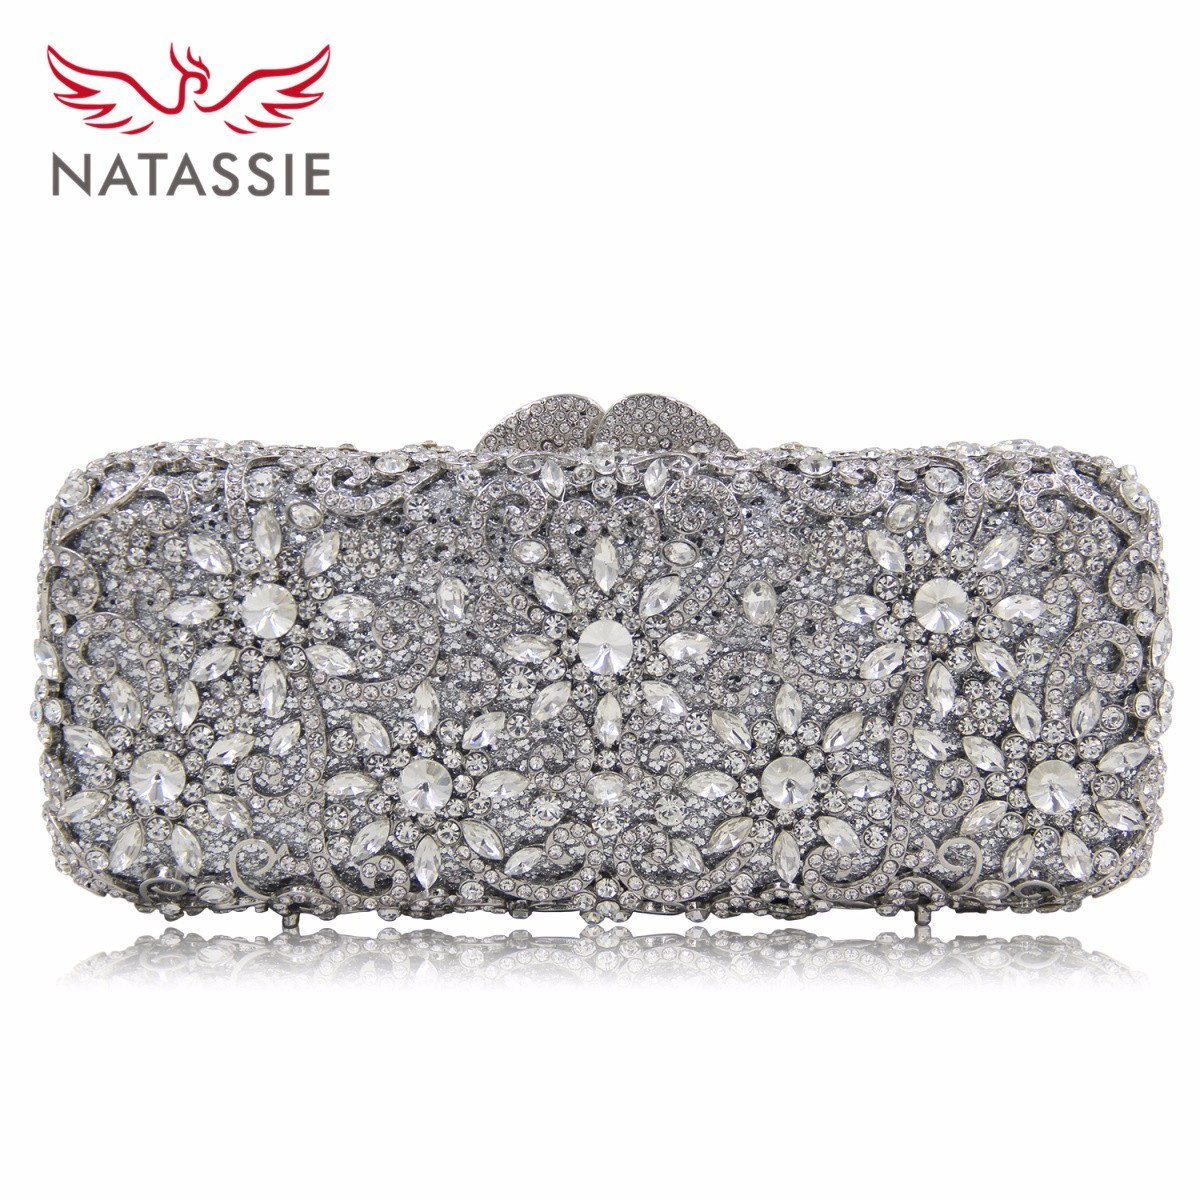 Natassie New Design Luxury Flower Crystal Women Dinner Banquet Evening Bags Ladies Wedding Day Clutches Party Purses natassie new design luxury crystal clutch women evening bag gold red ladies wedding banquet party purses good quality